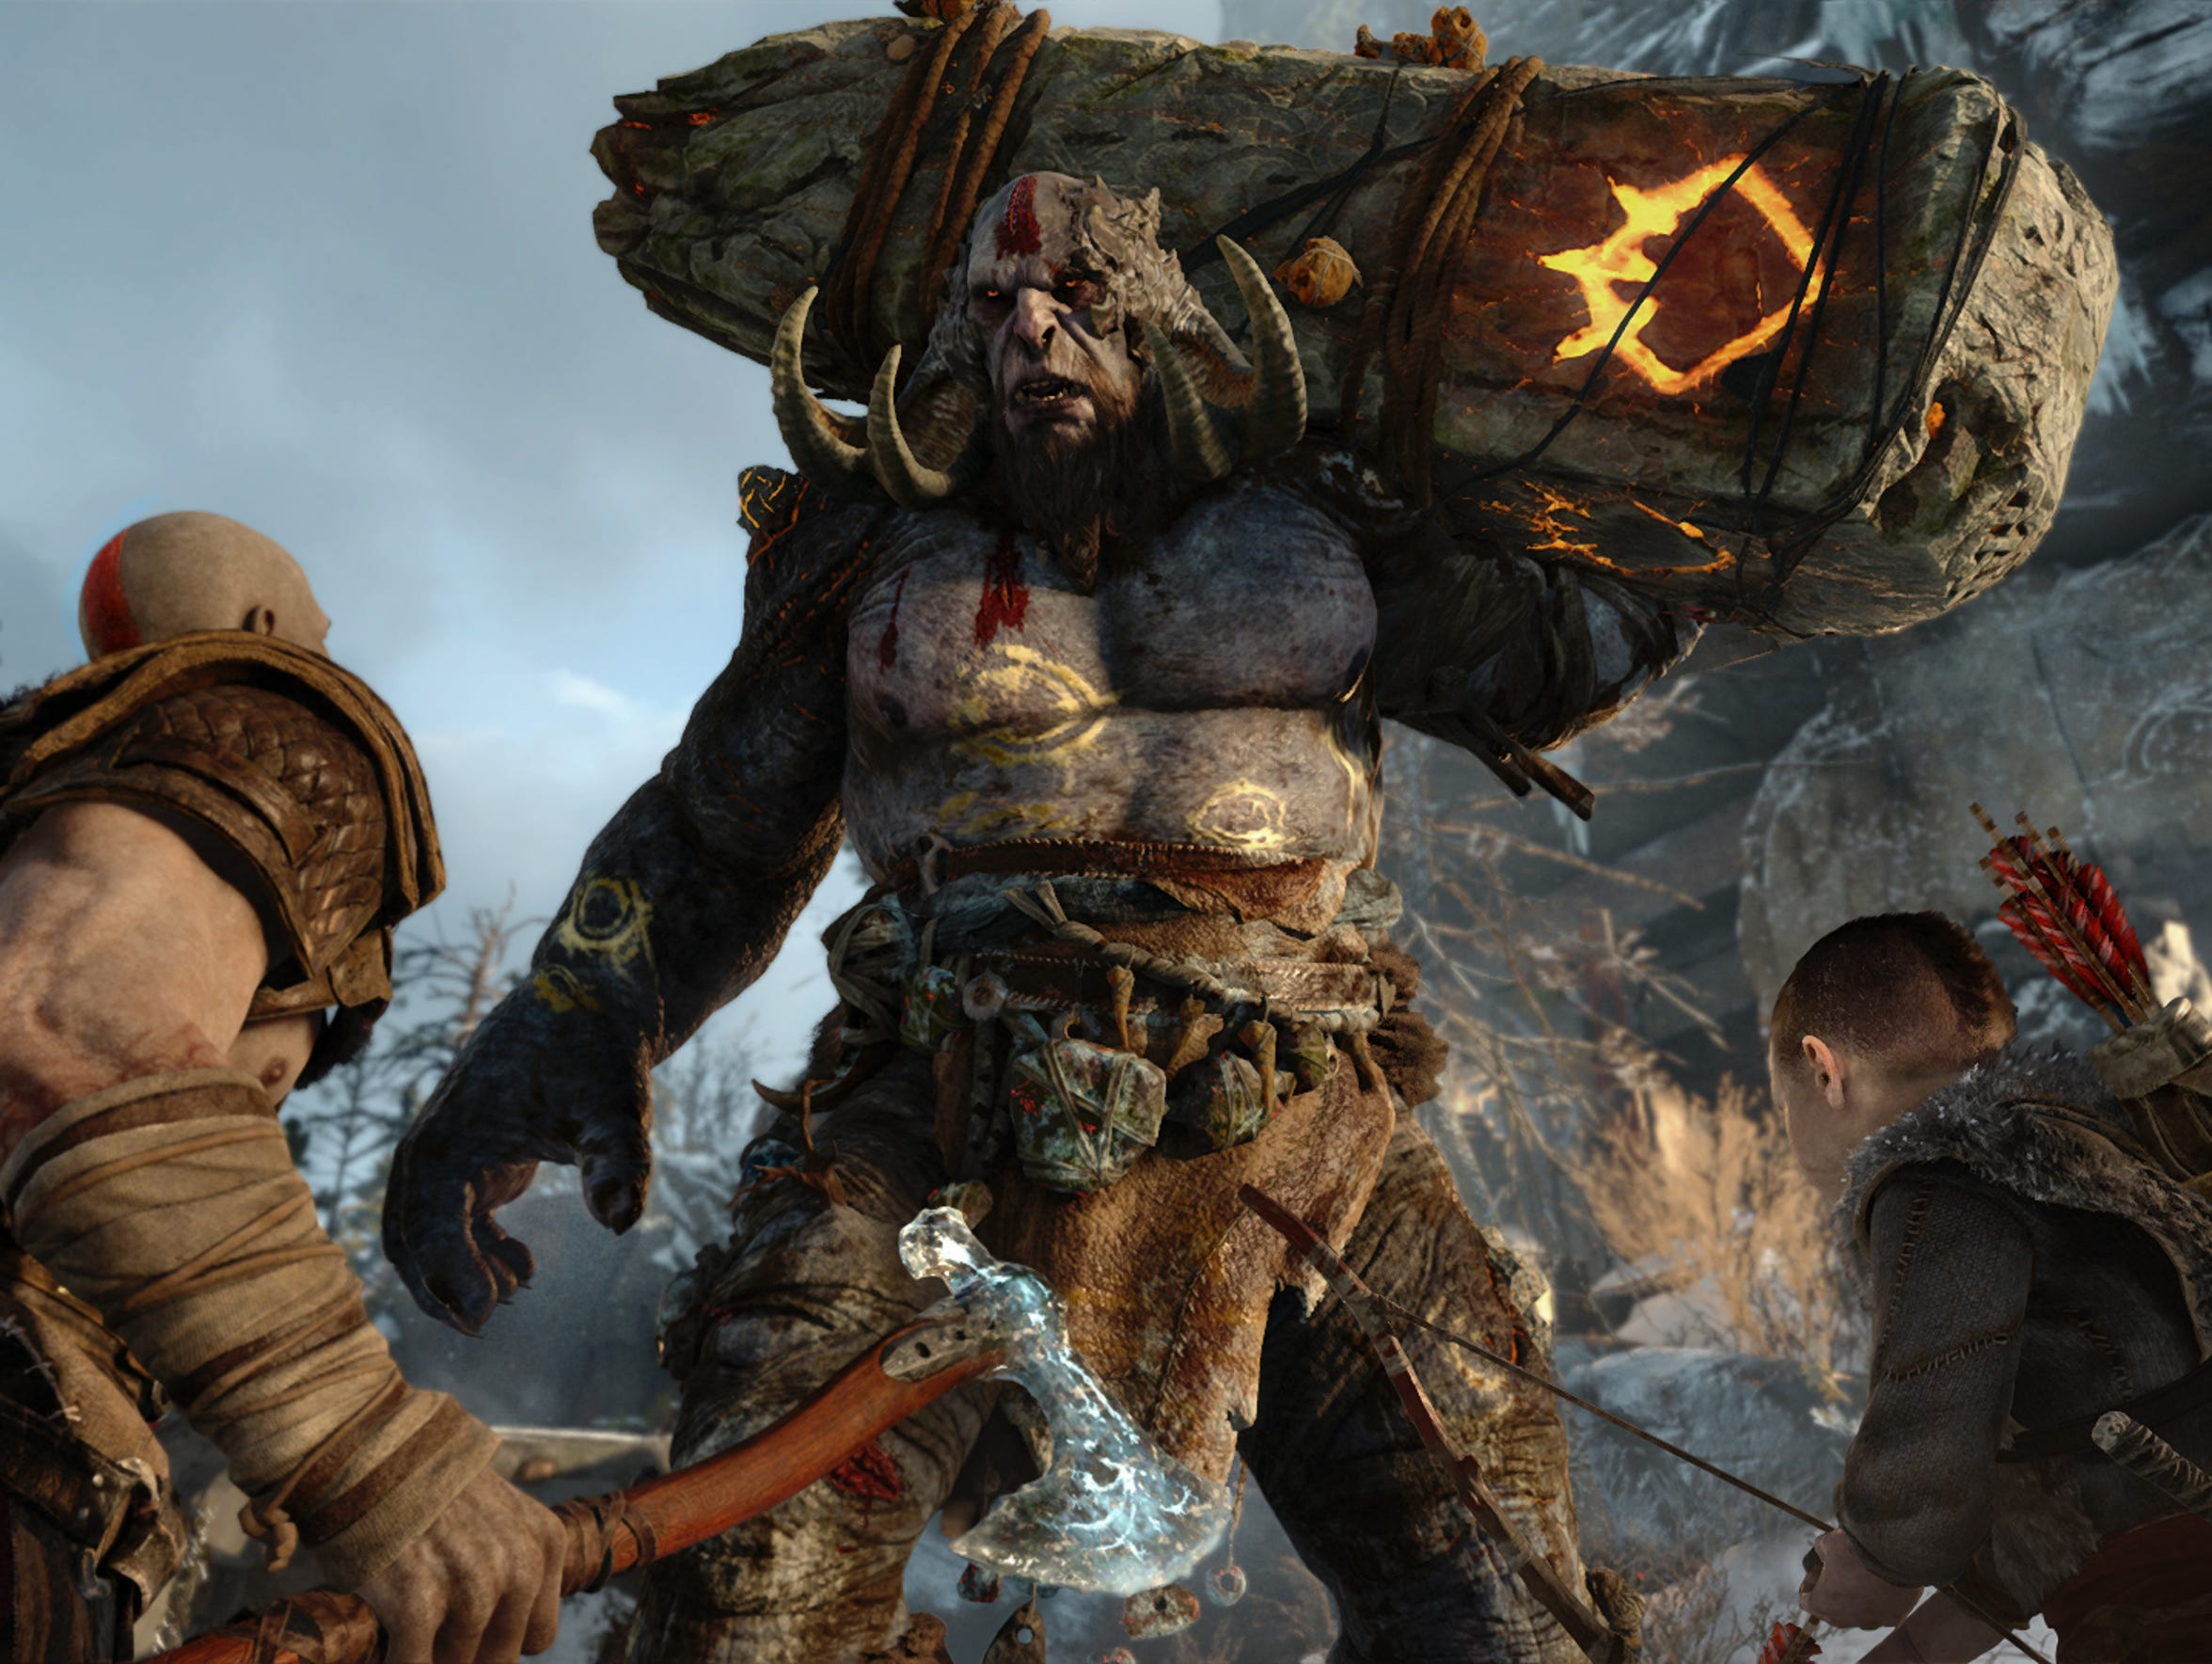 God of War for the Sony PlayStation 4.